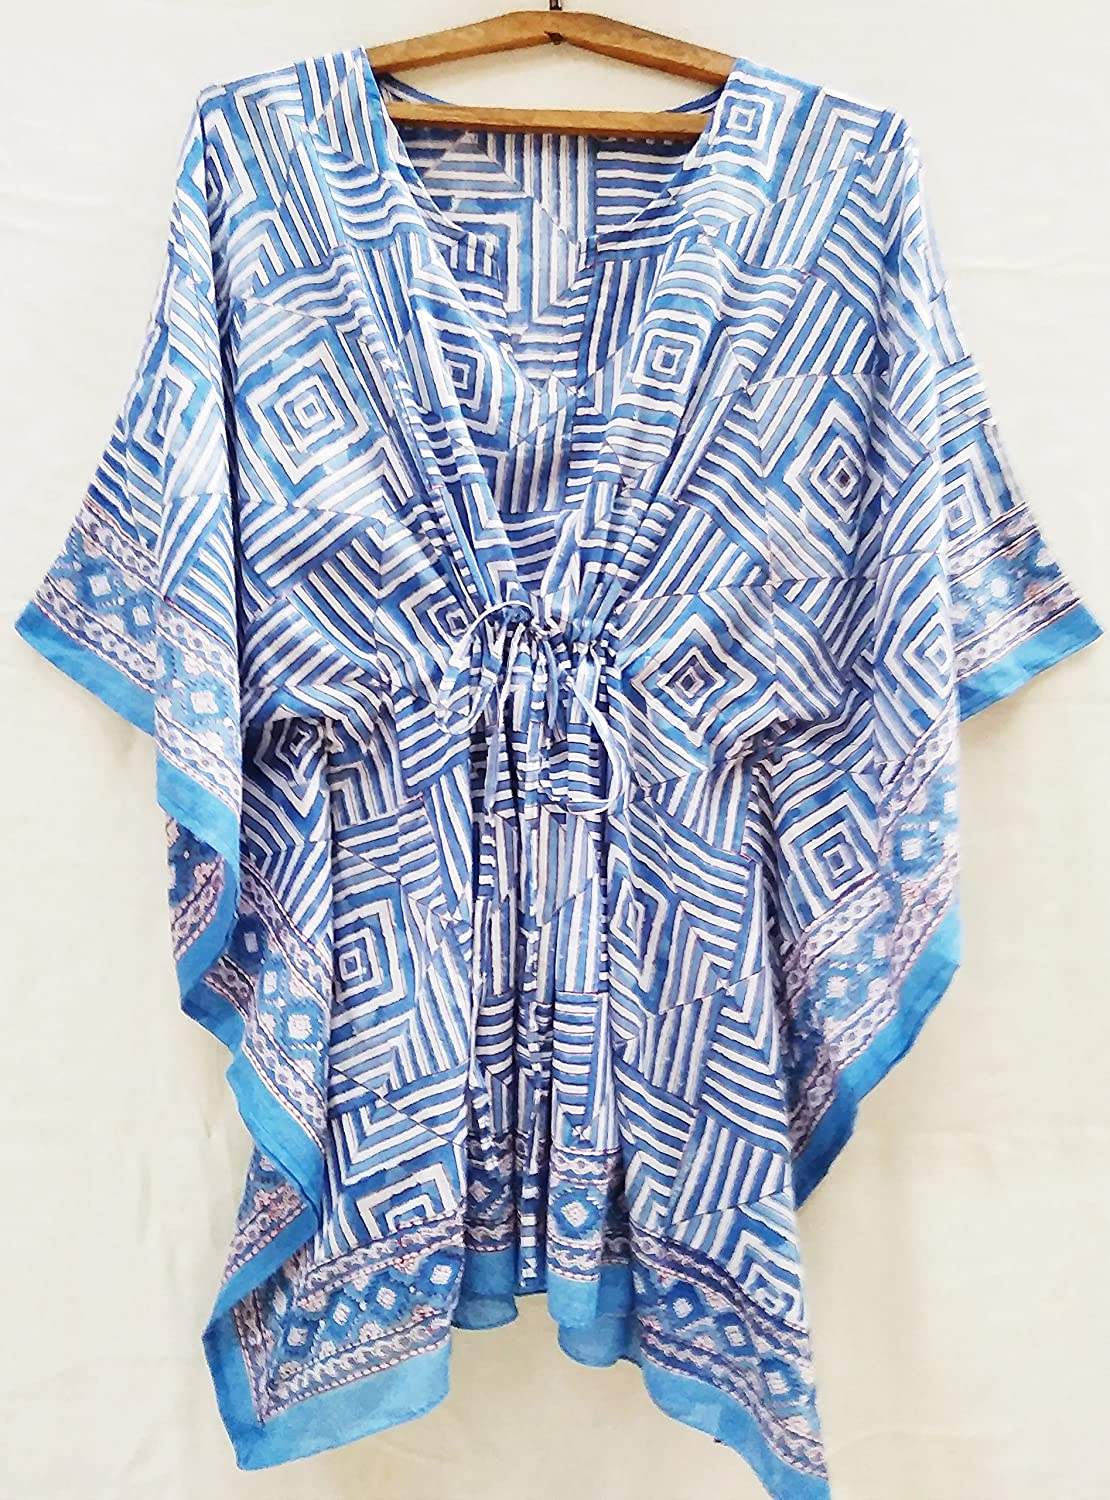 Blue & White Art Deco Anokhi style Hand Block Print Indian cotton Kaftan Tunic top One size